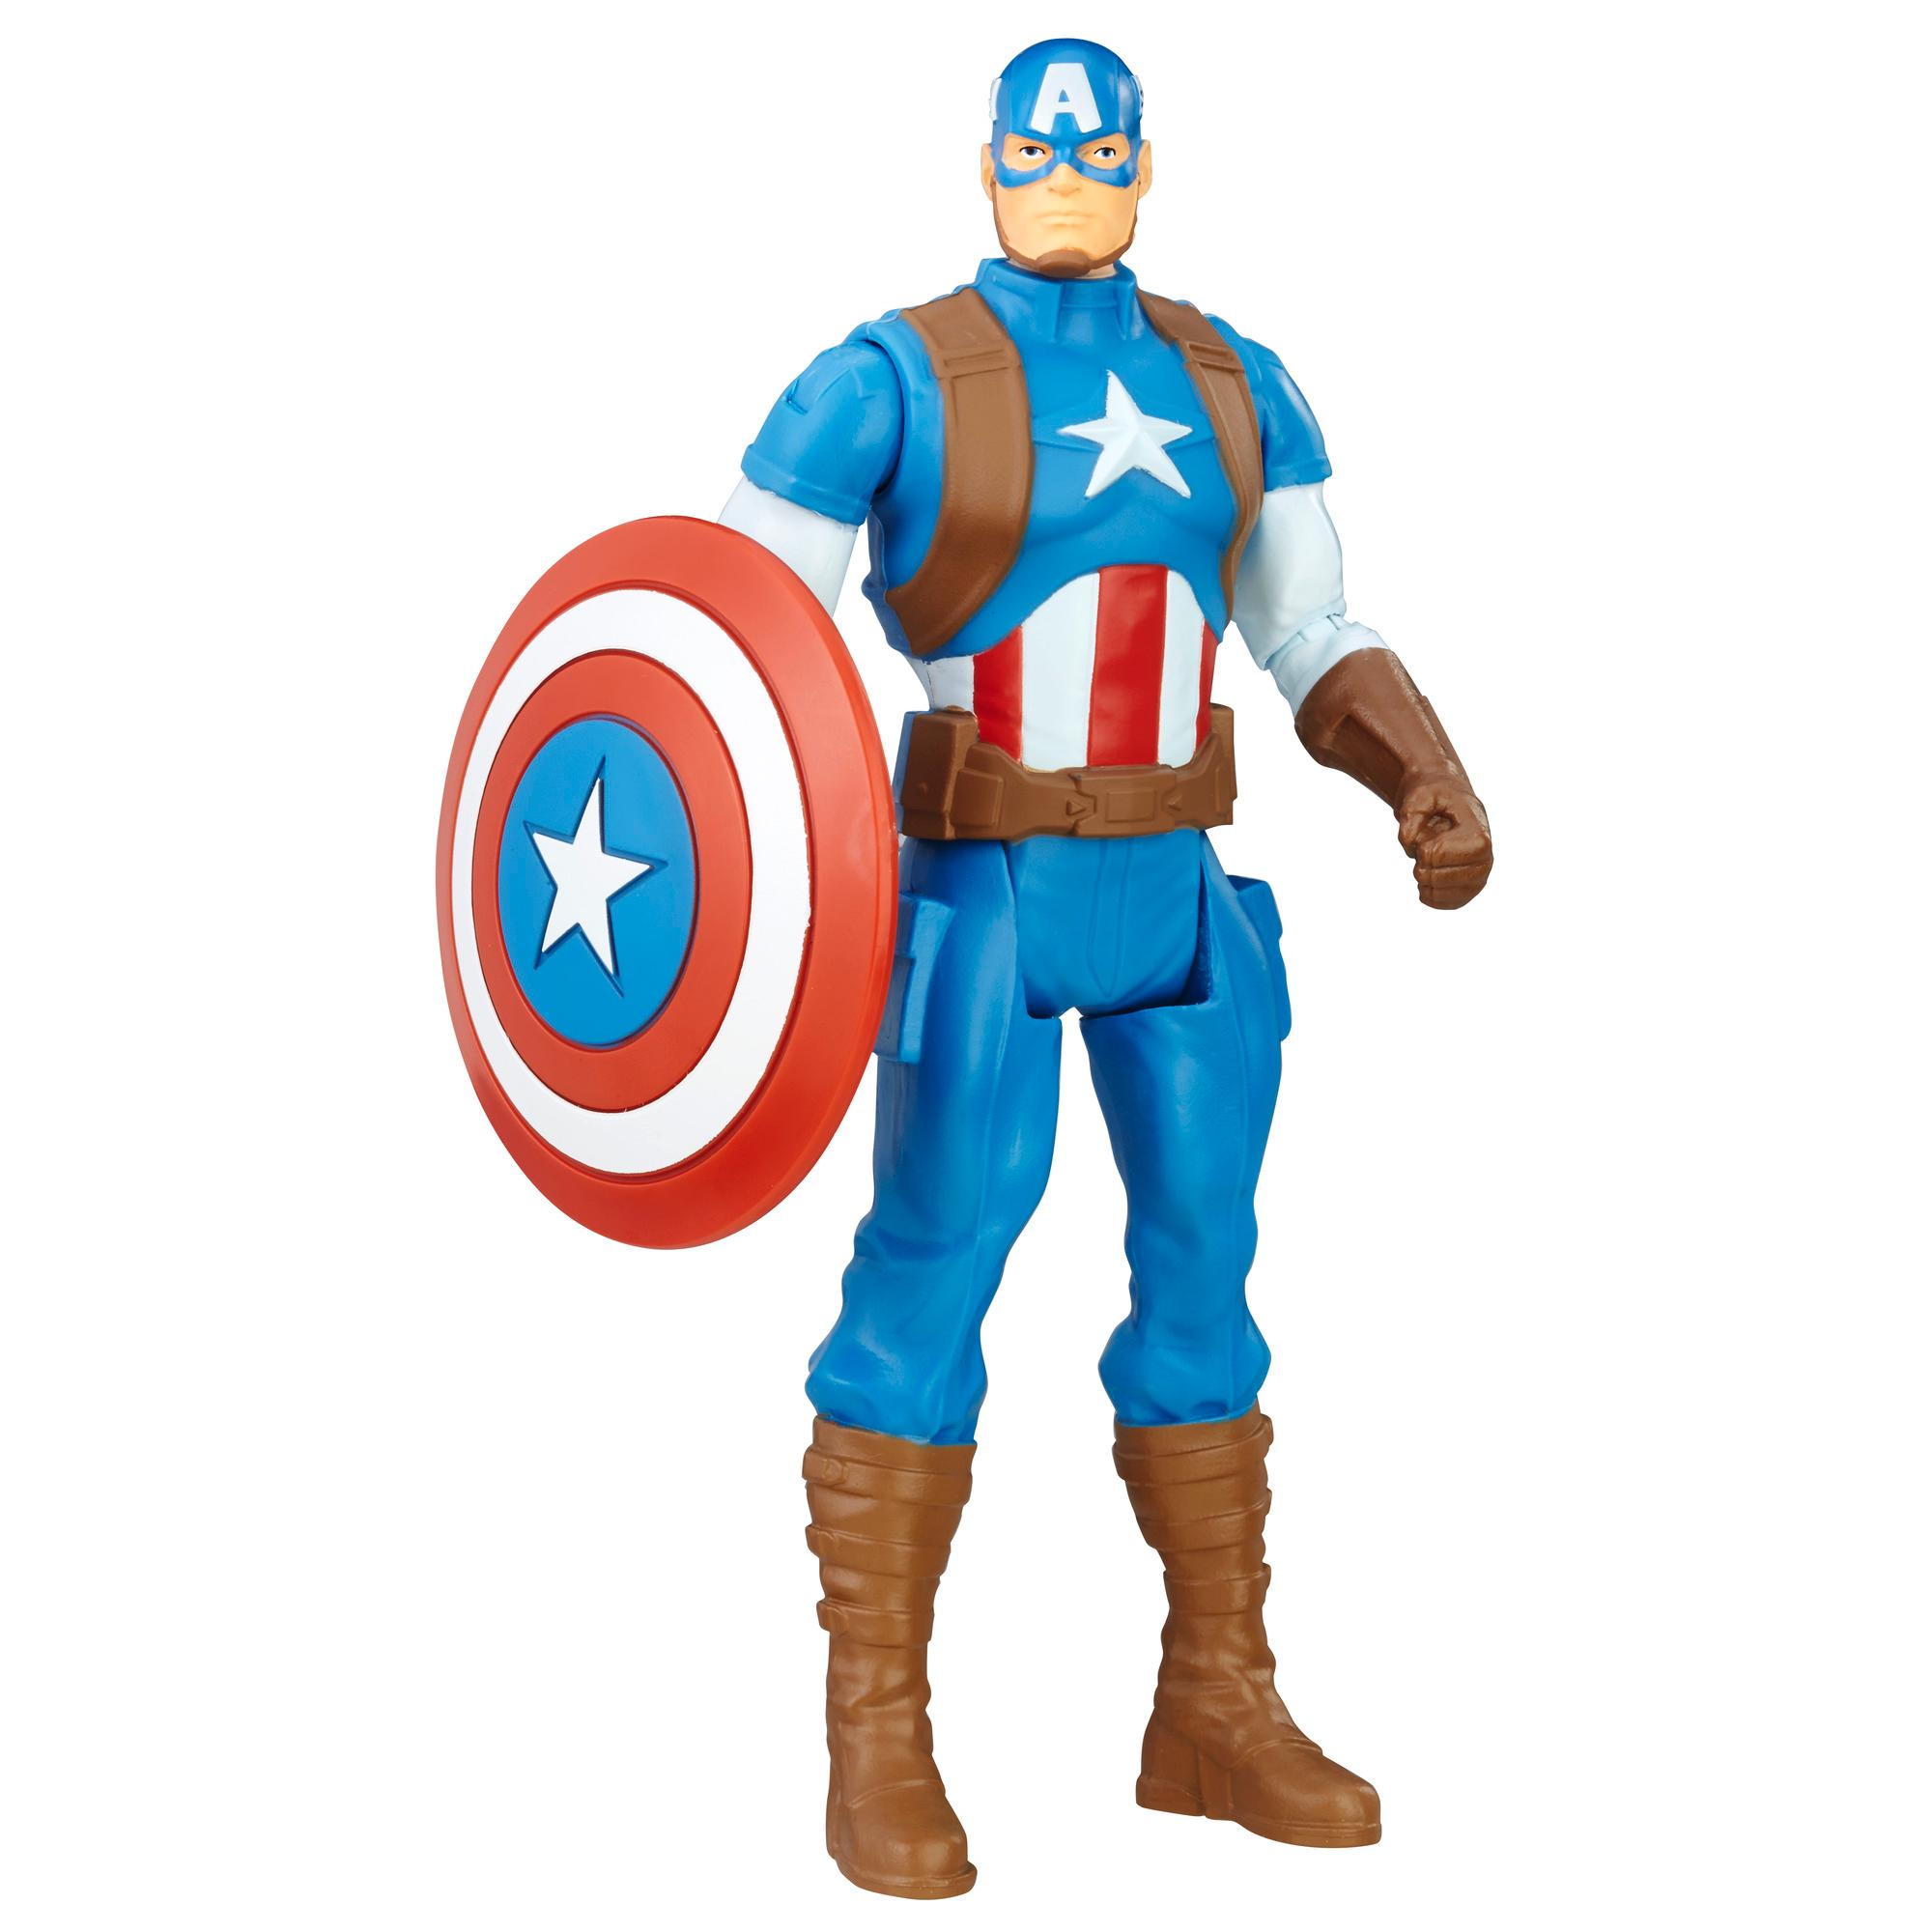 Marvel Avengers Captain America 6-in Basic Action Figure